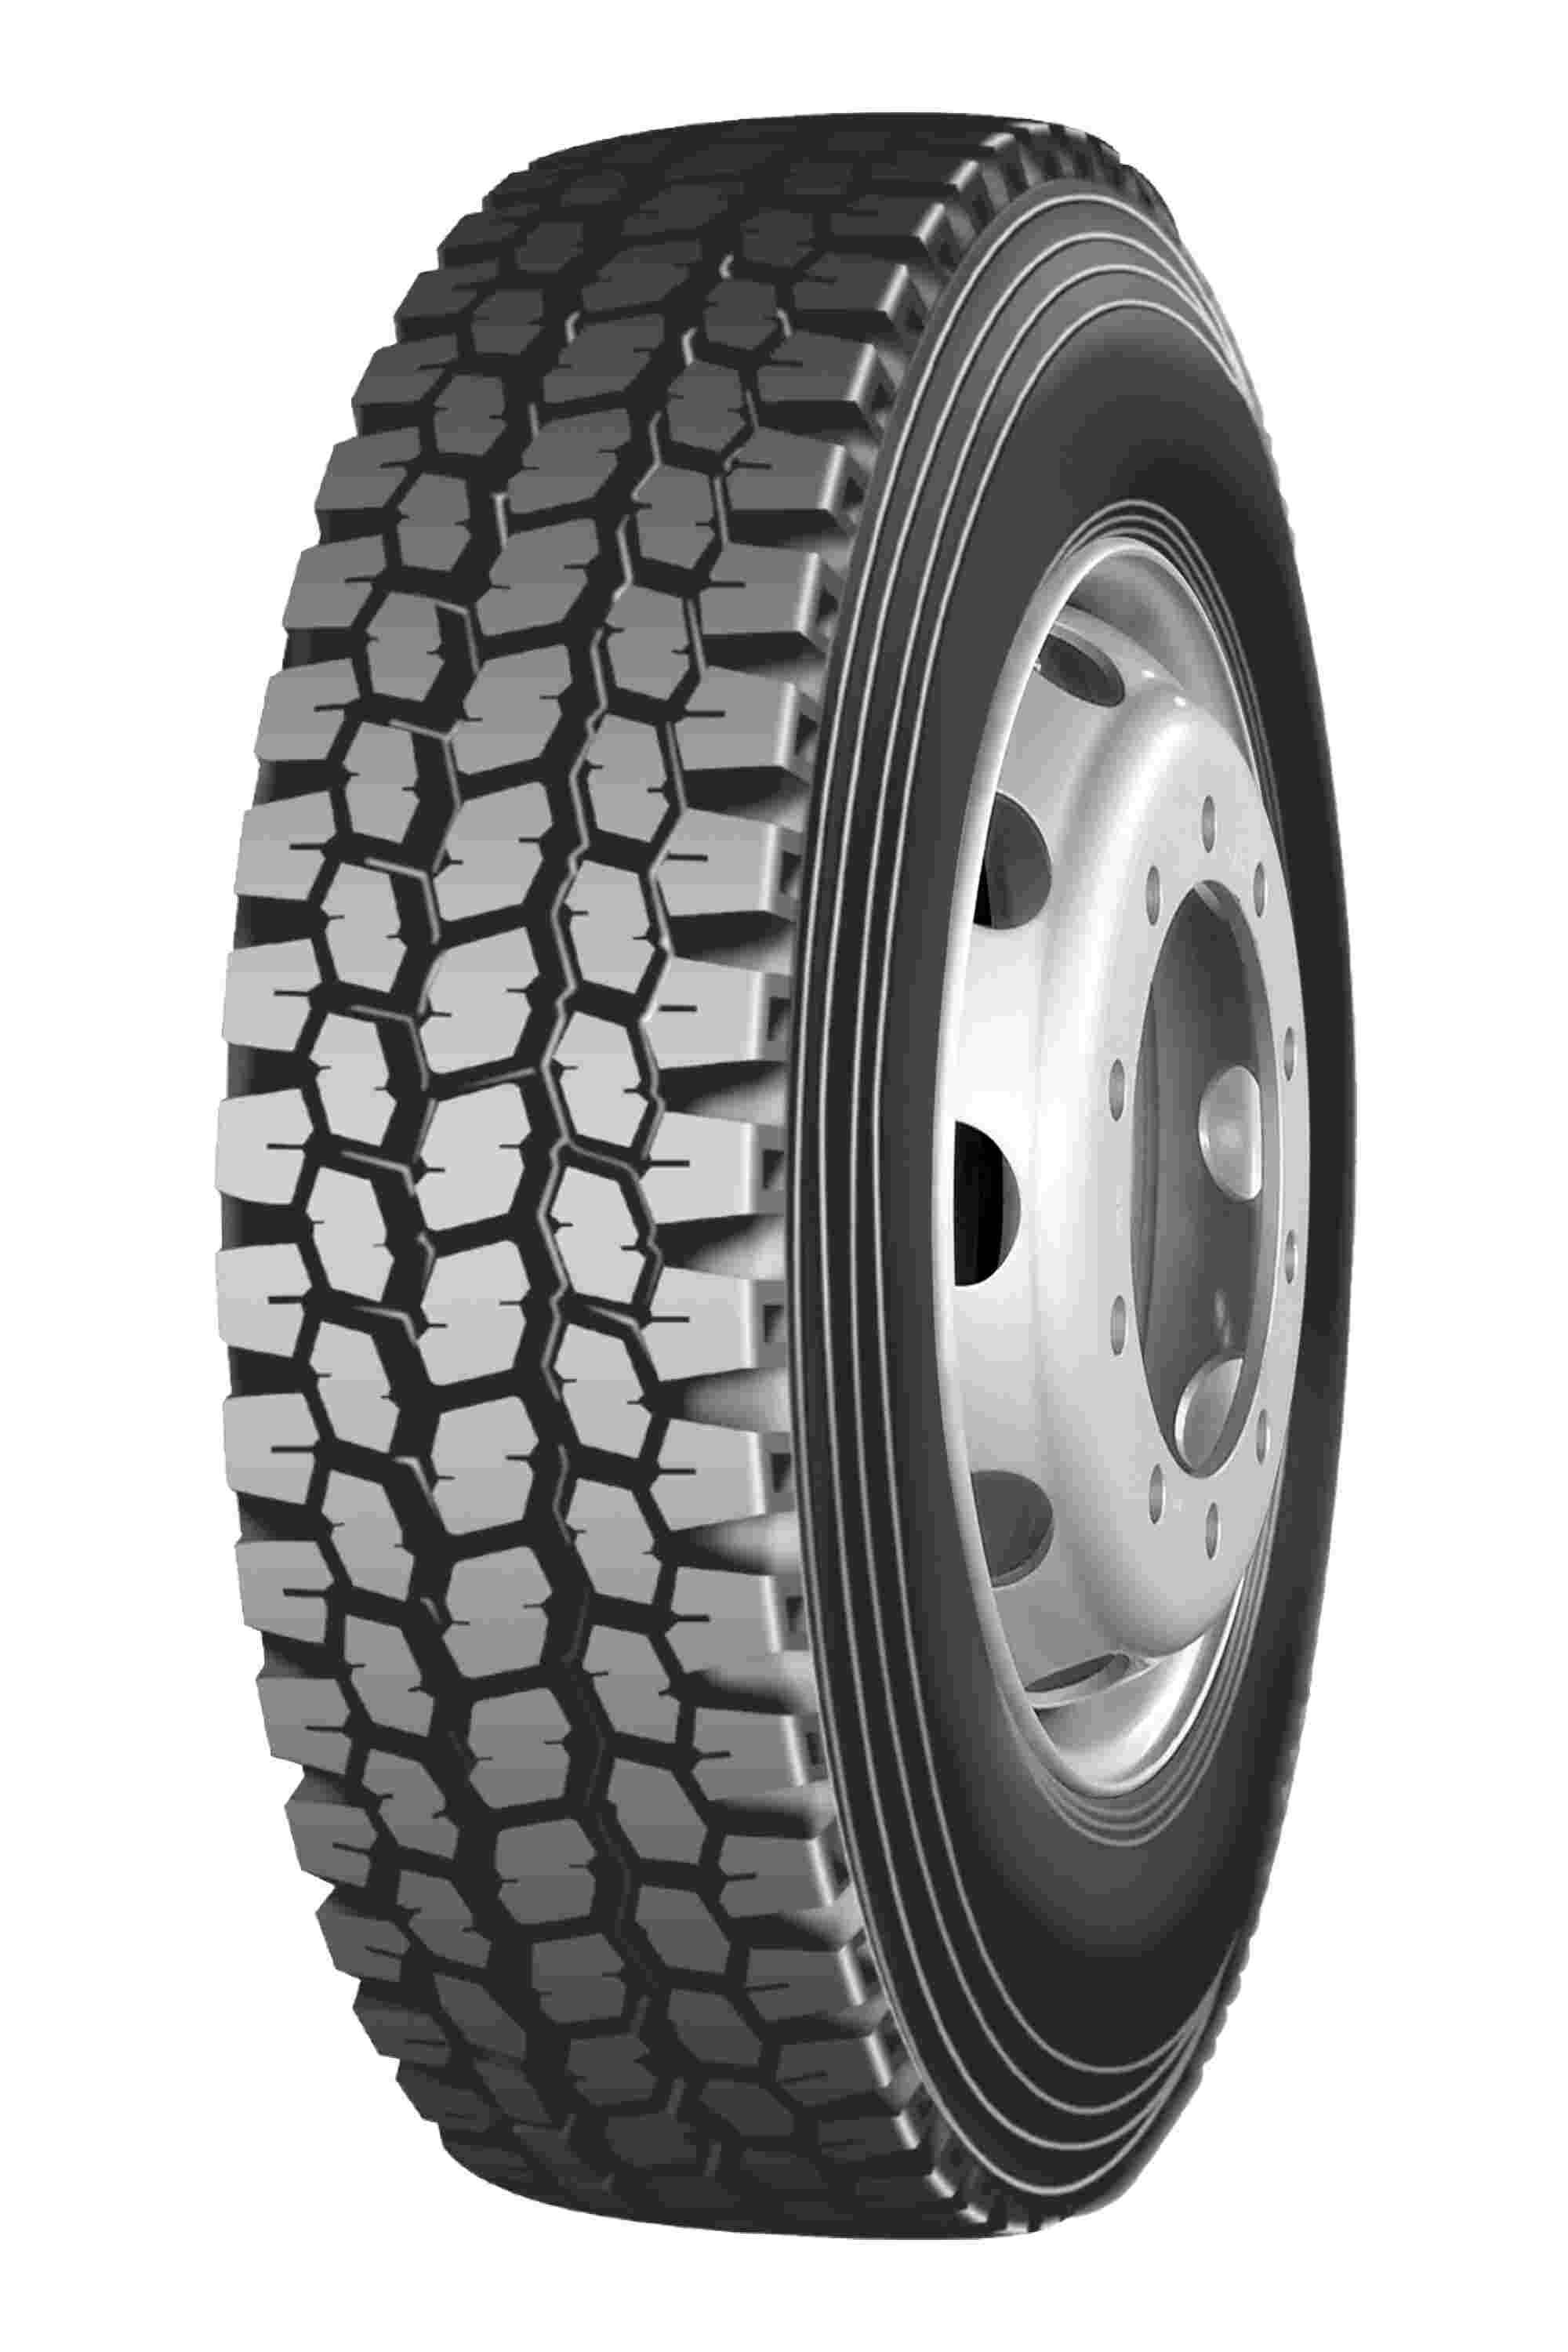 chinese companies looking for distributors in USA for truck tires  1000R20 11r22.5 11r24.5 285/75r24